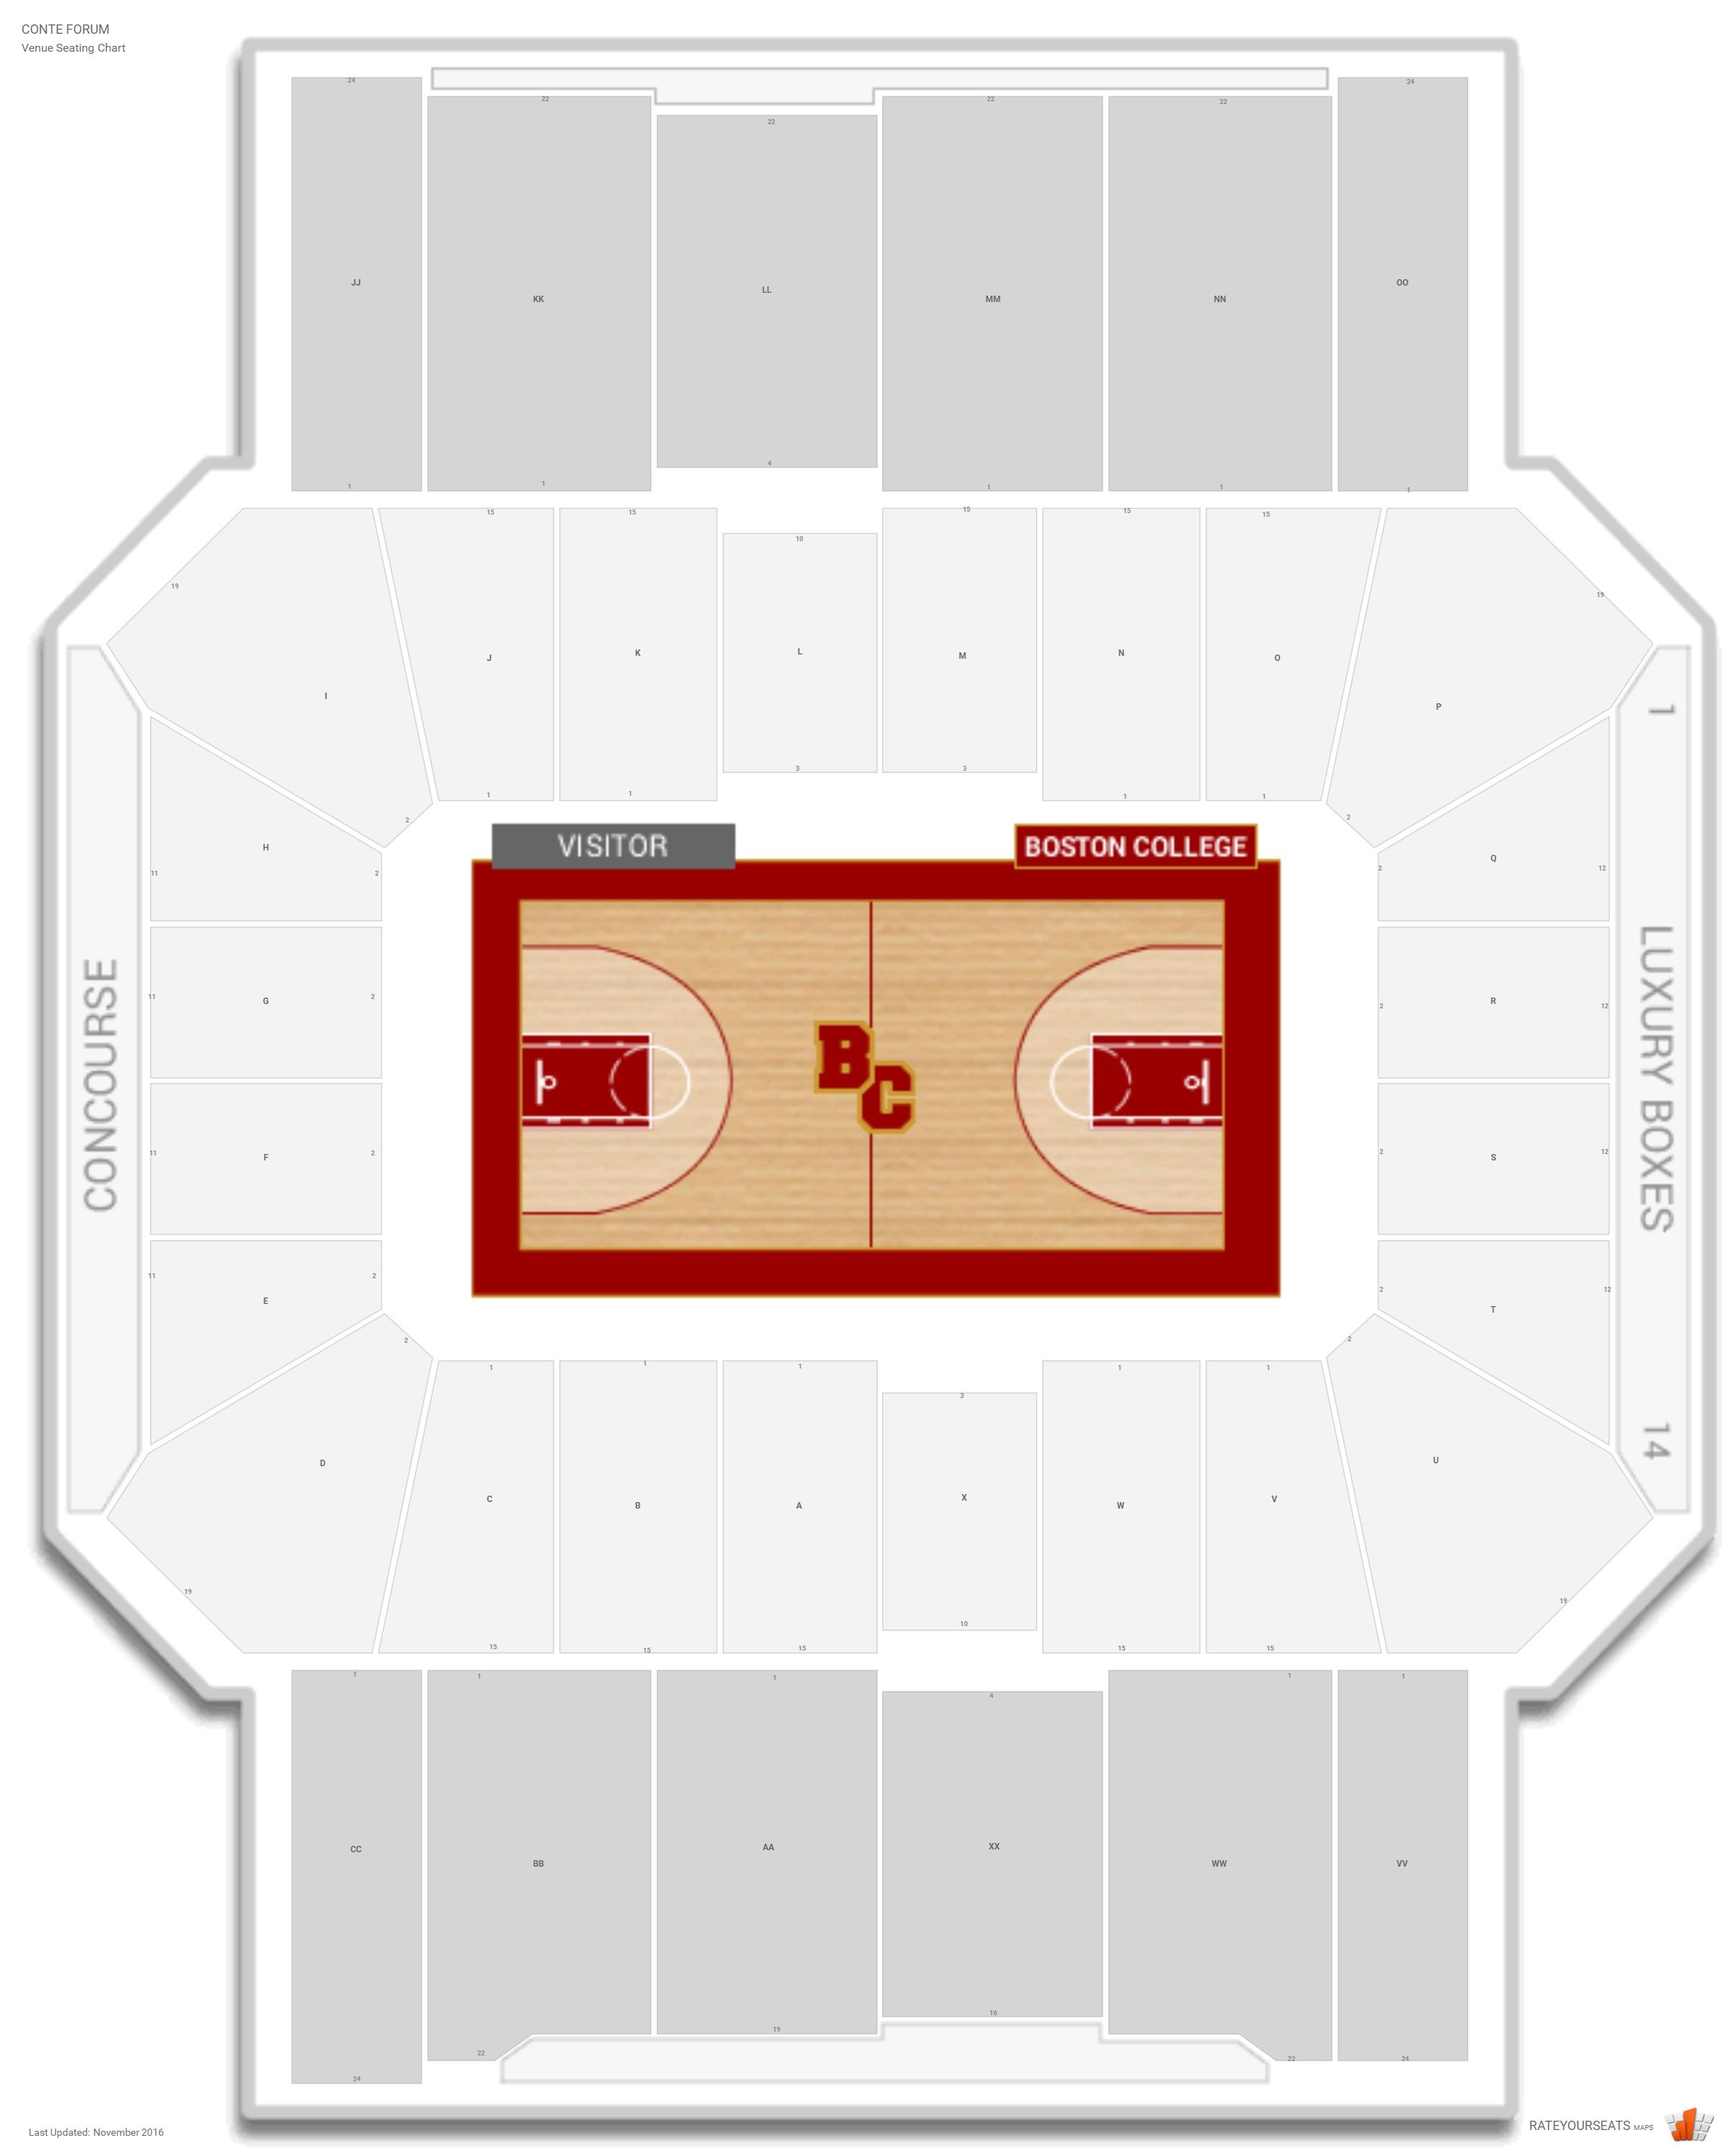 Conte forum boston college seating guide rateyourseats com